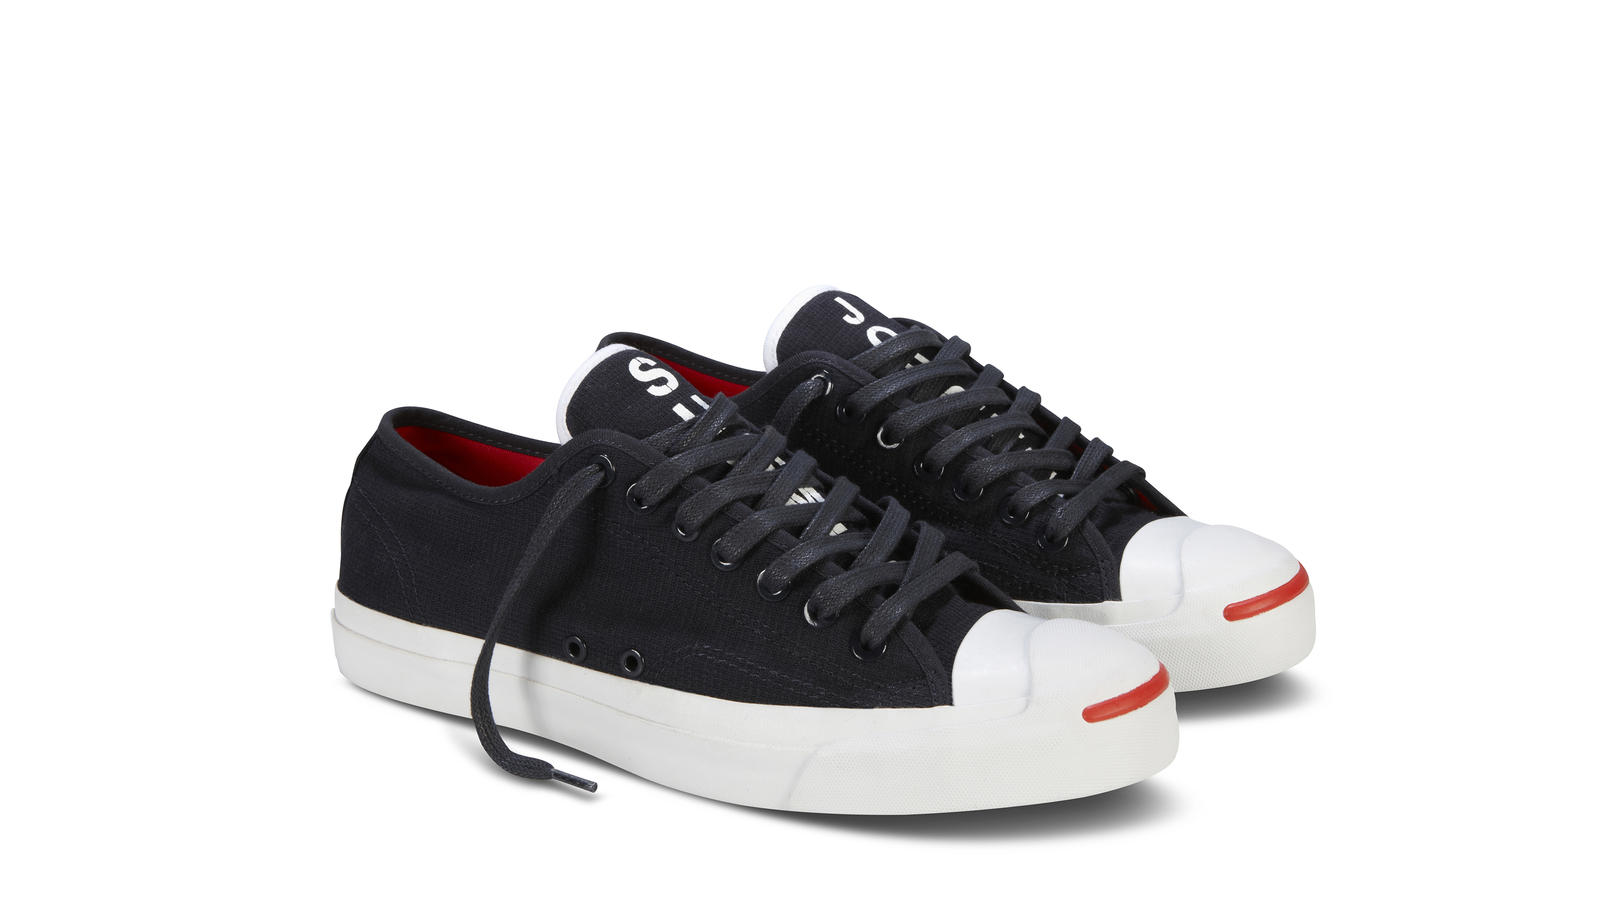 Converse Slam Jam Jack Purcell Diagonal Original